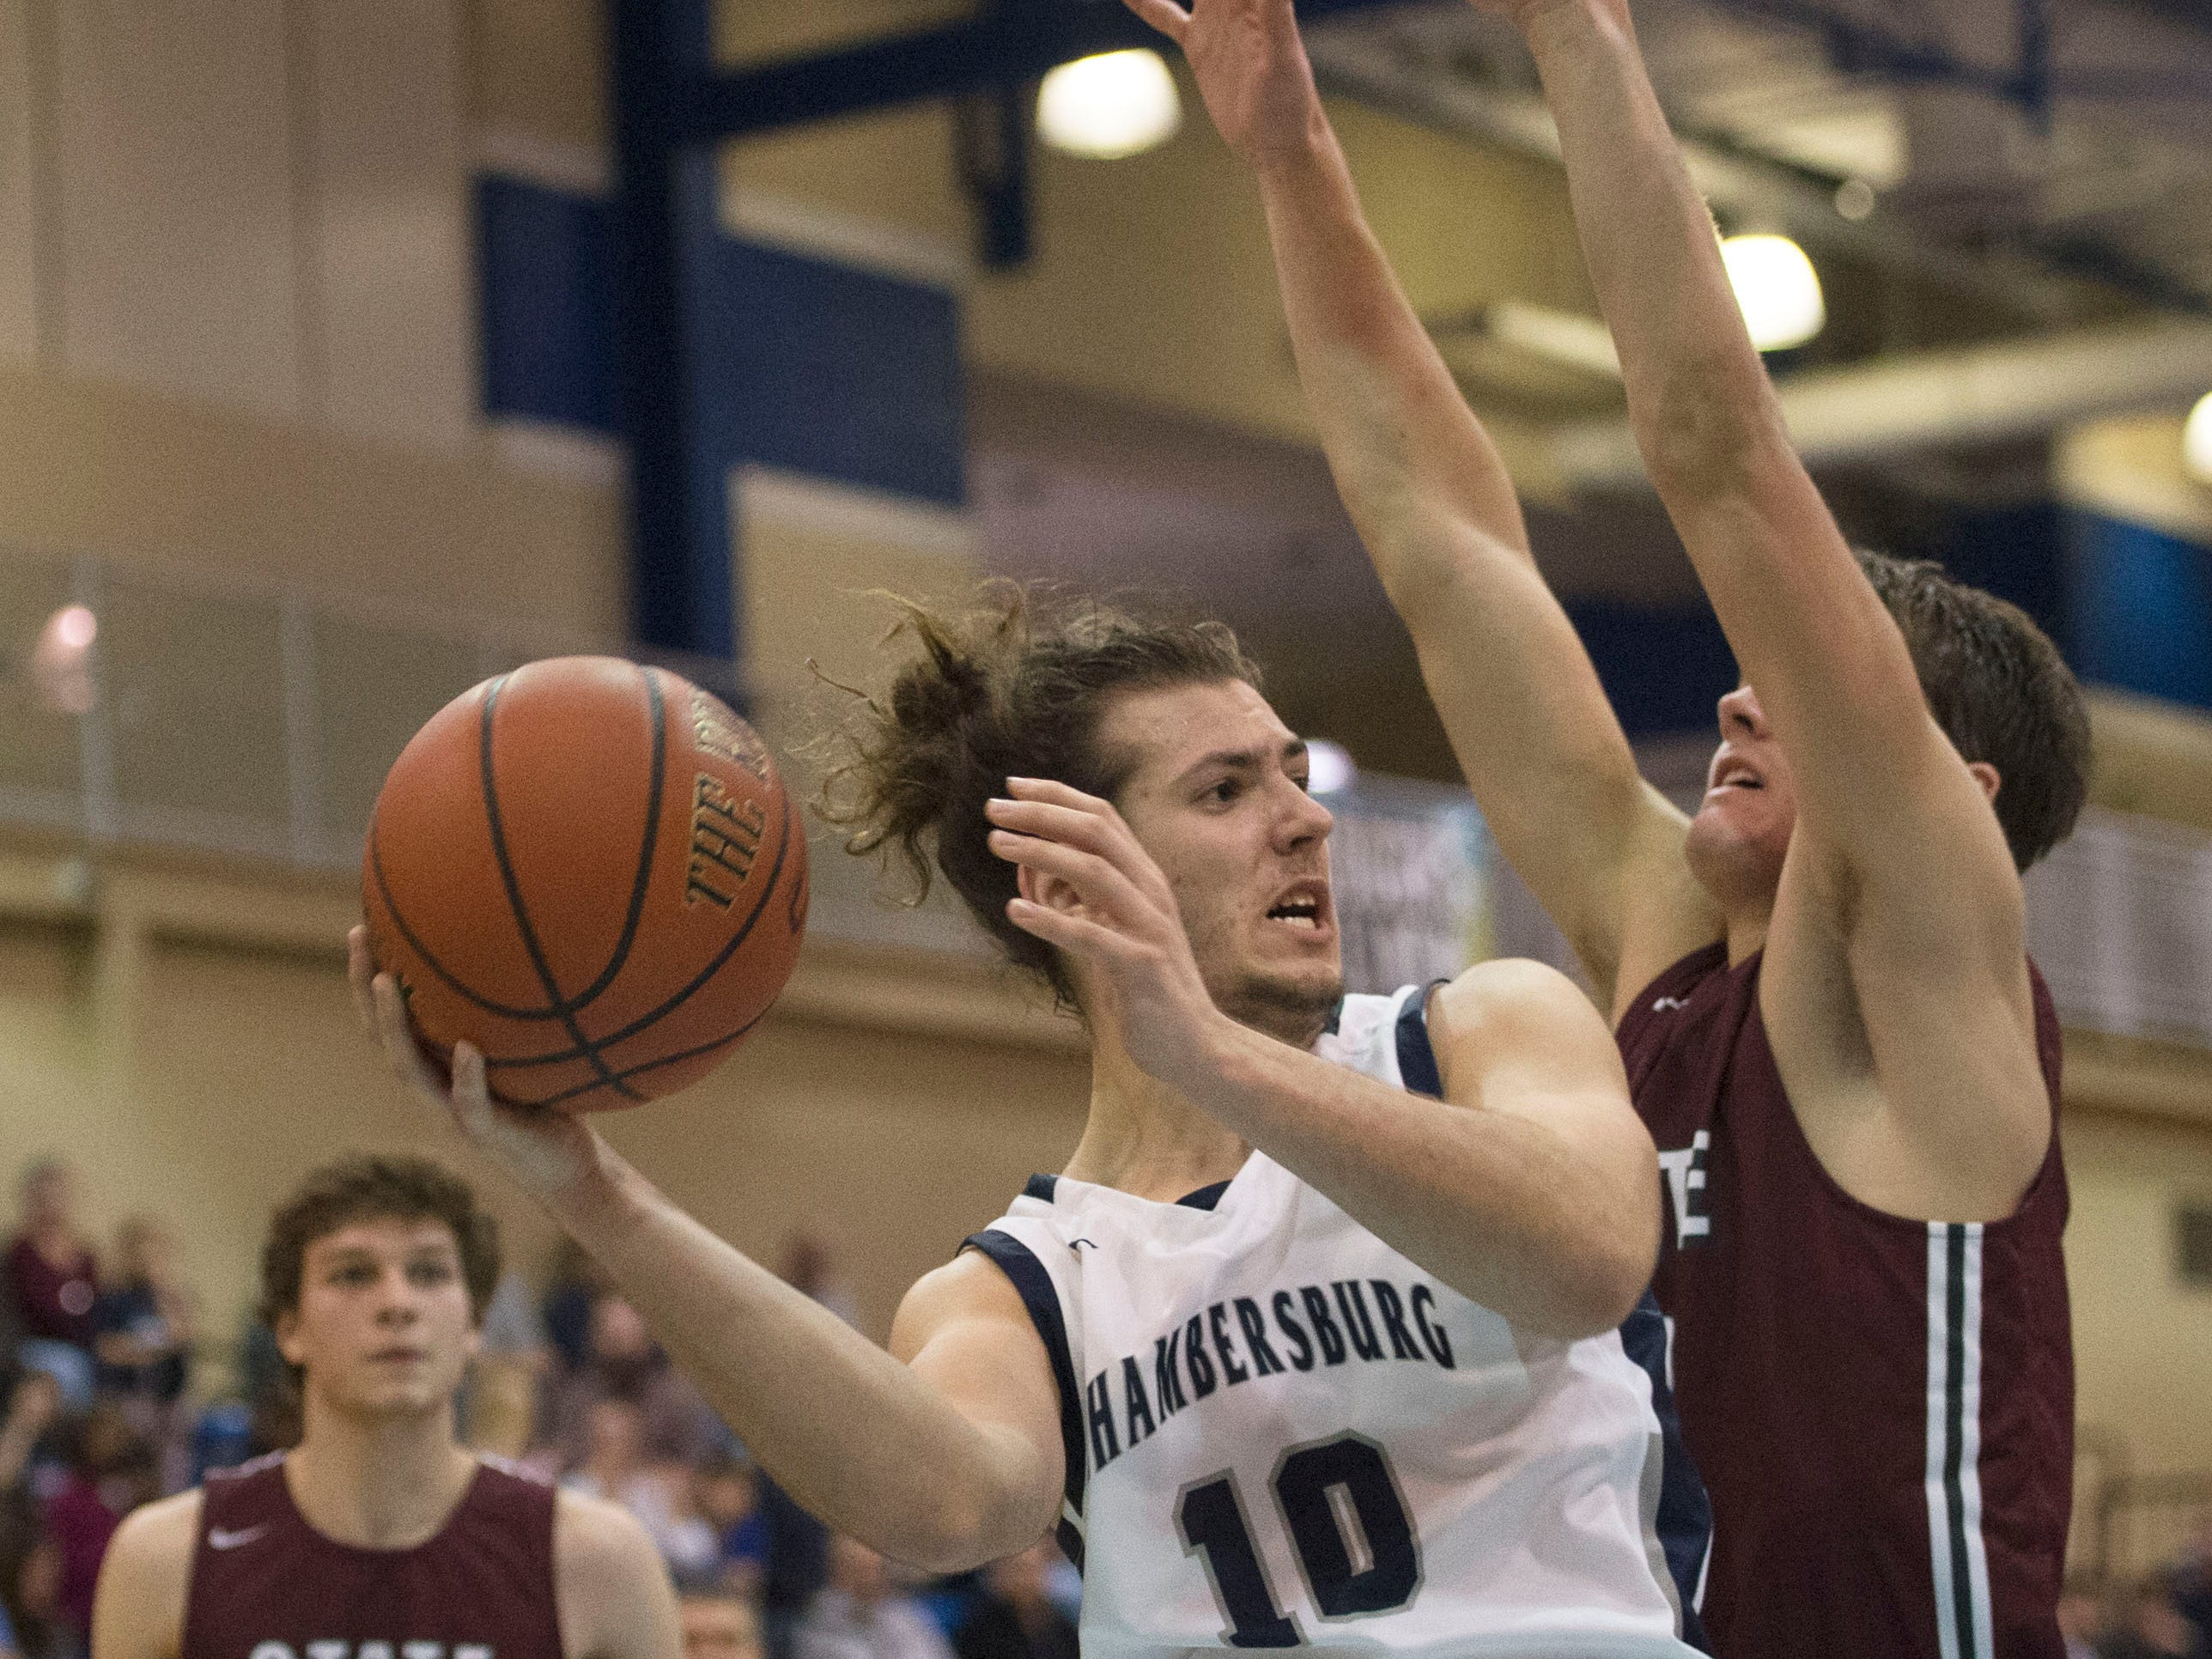 Seth Brouse of Chambersburg shoots. Chambersburg dropped a buzzer-beater 42-40 to State College during  D3 basketball, Friday, Dec. 14, 2018.